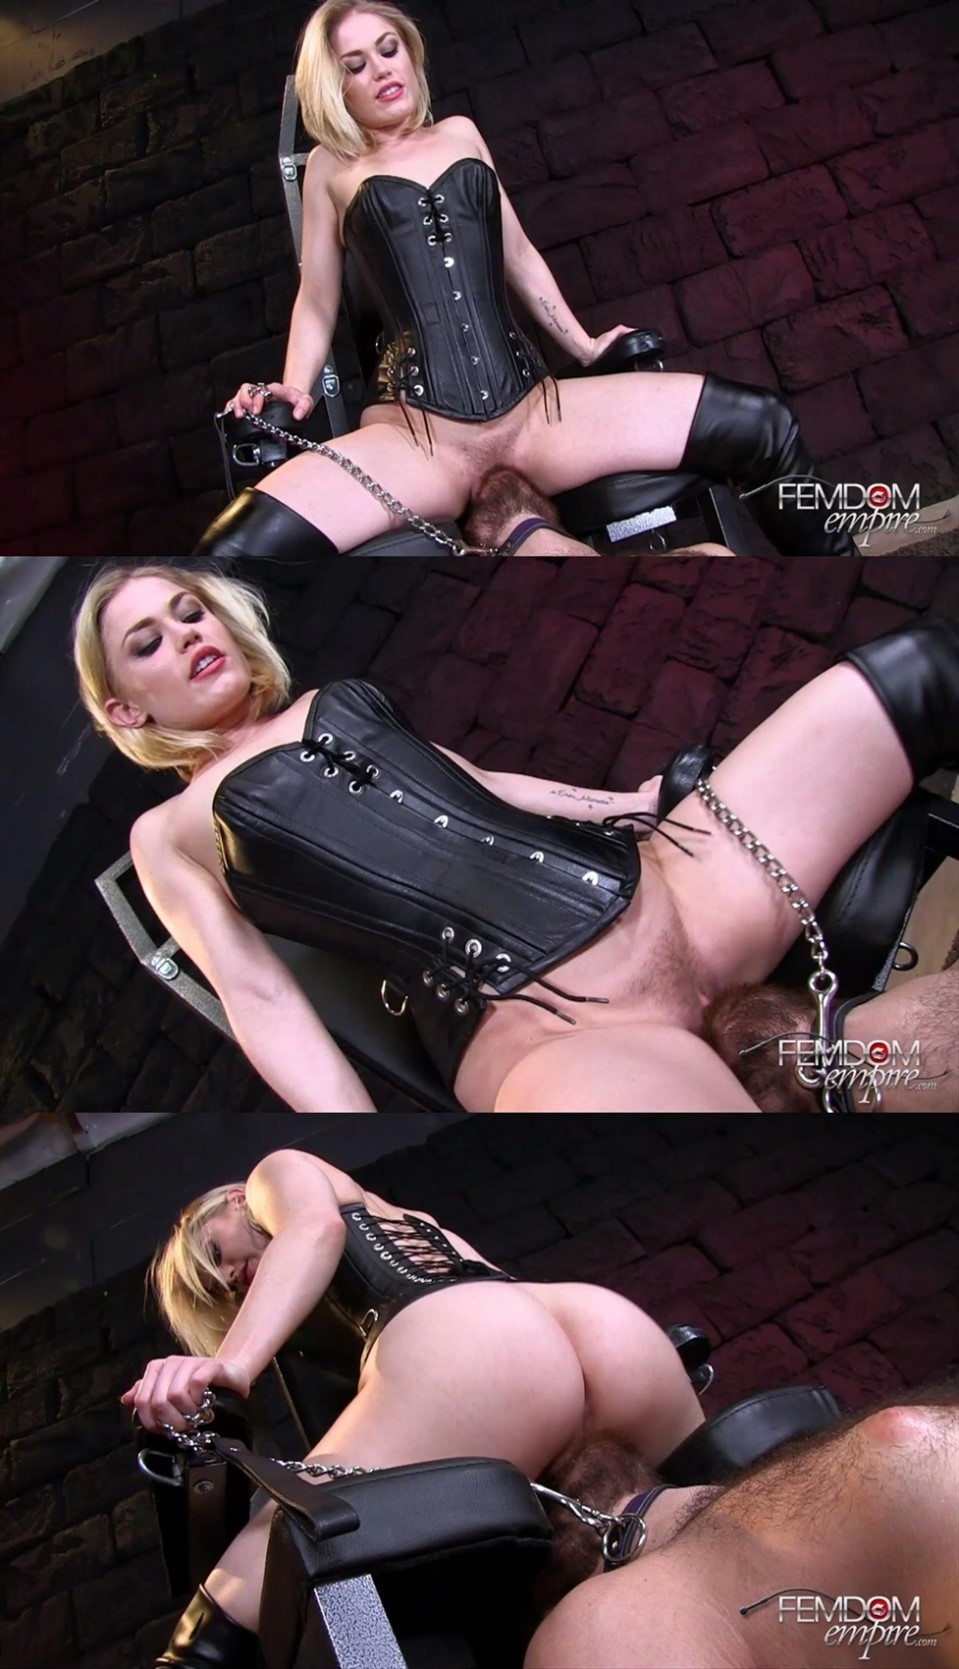 [Full HD] Ash Hollywood - Grind On Out Ash Hollywood - SiteRip-00:08:38 | Cunnilingus, Hairy, Facesitting, Femdom, Pussy Worship And Lick - 483,2 MB